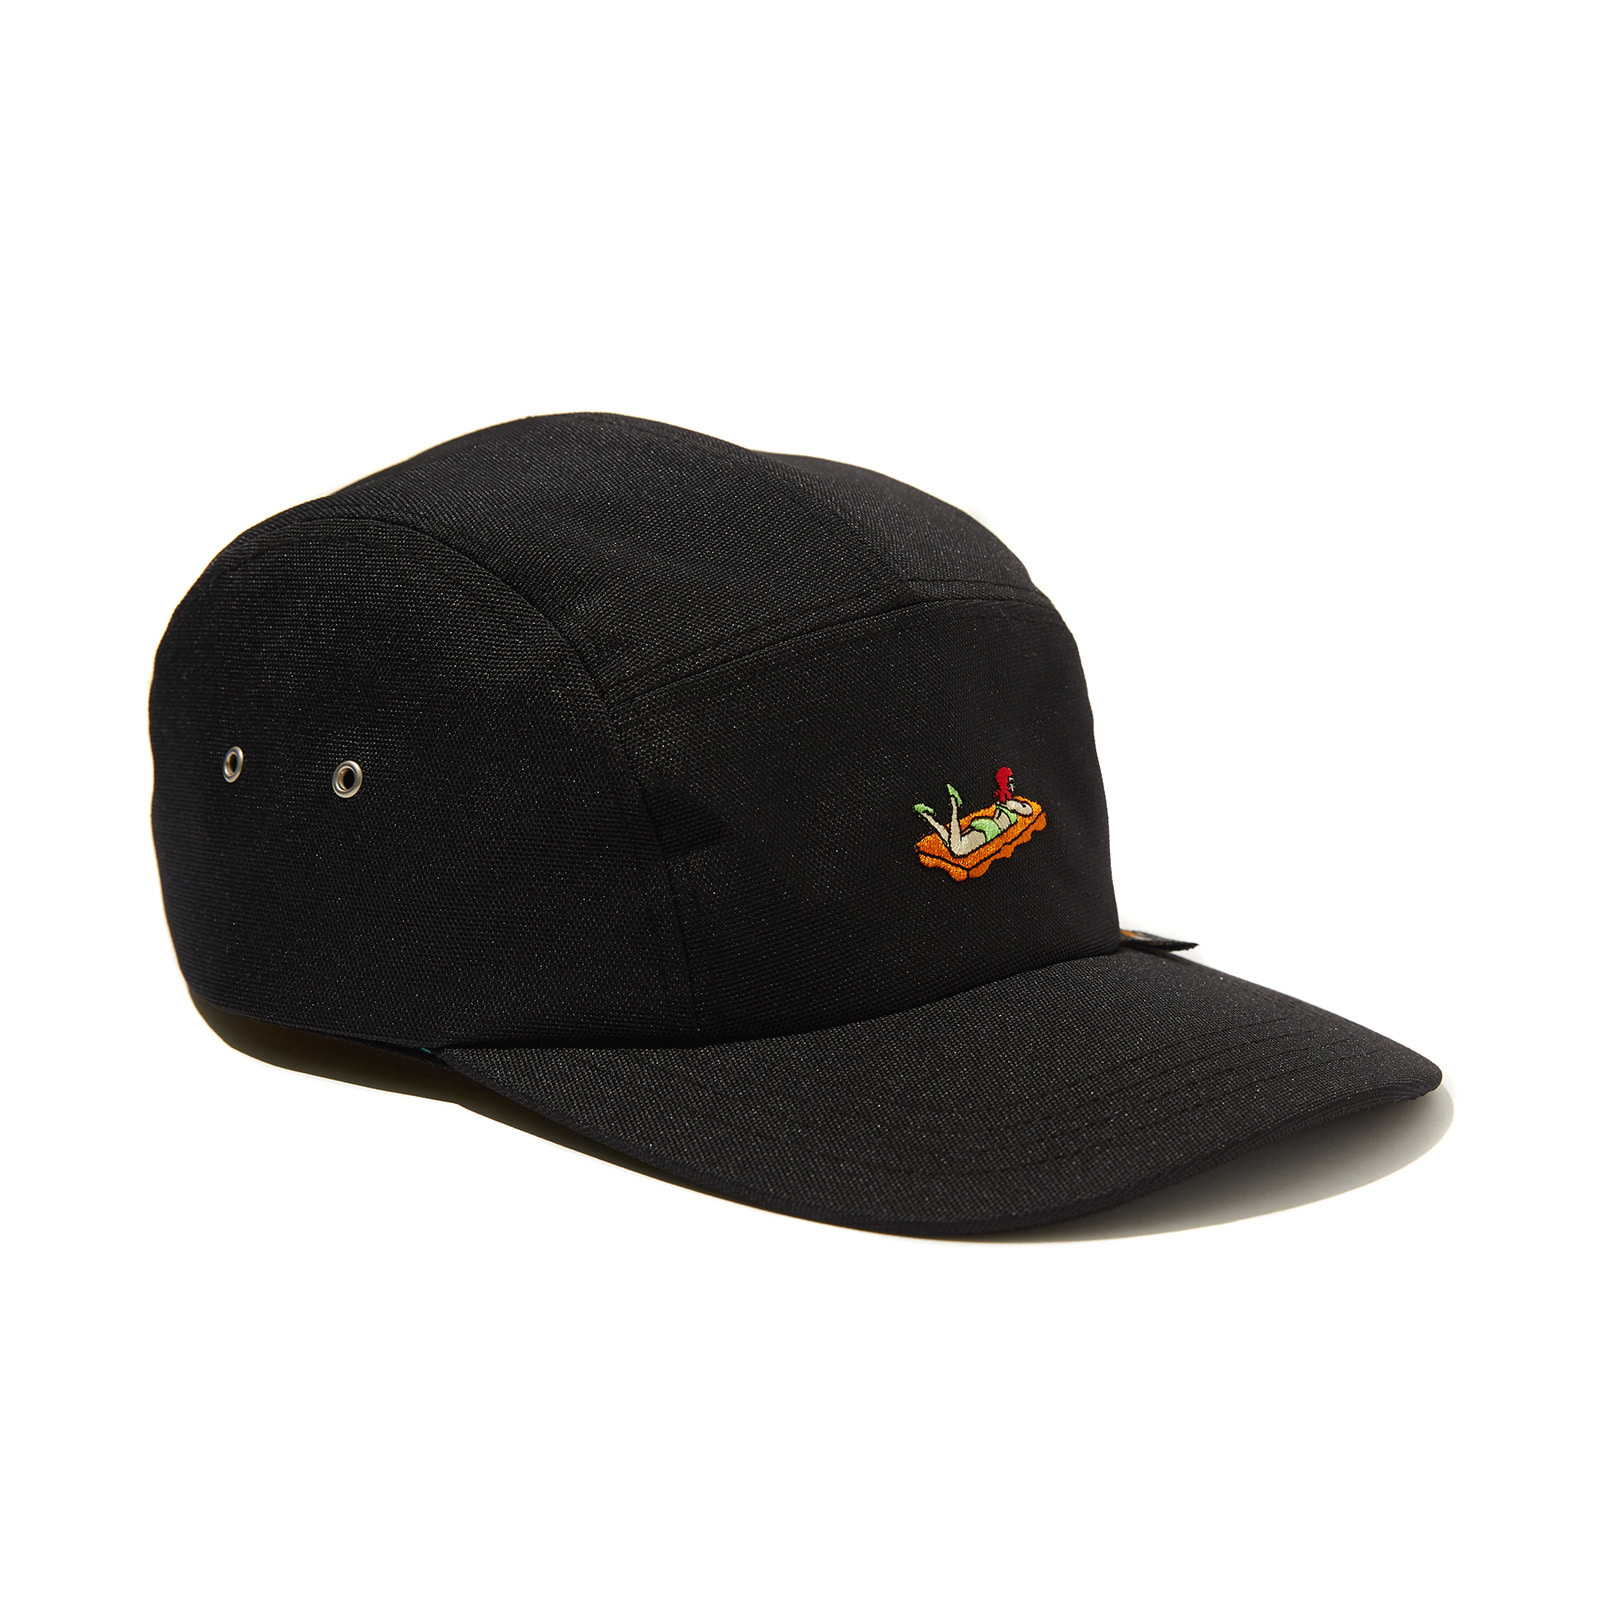 FG CAMP CAP (BLACK)